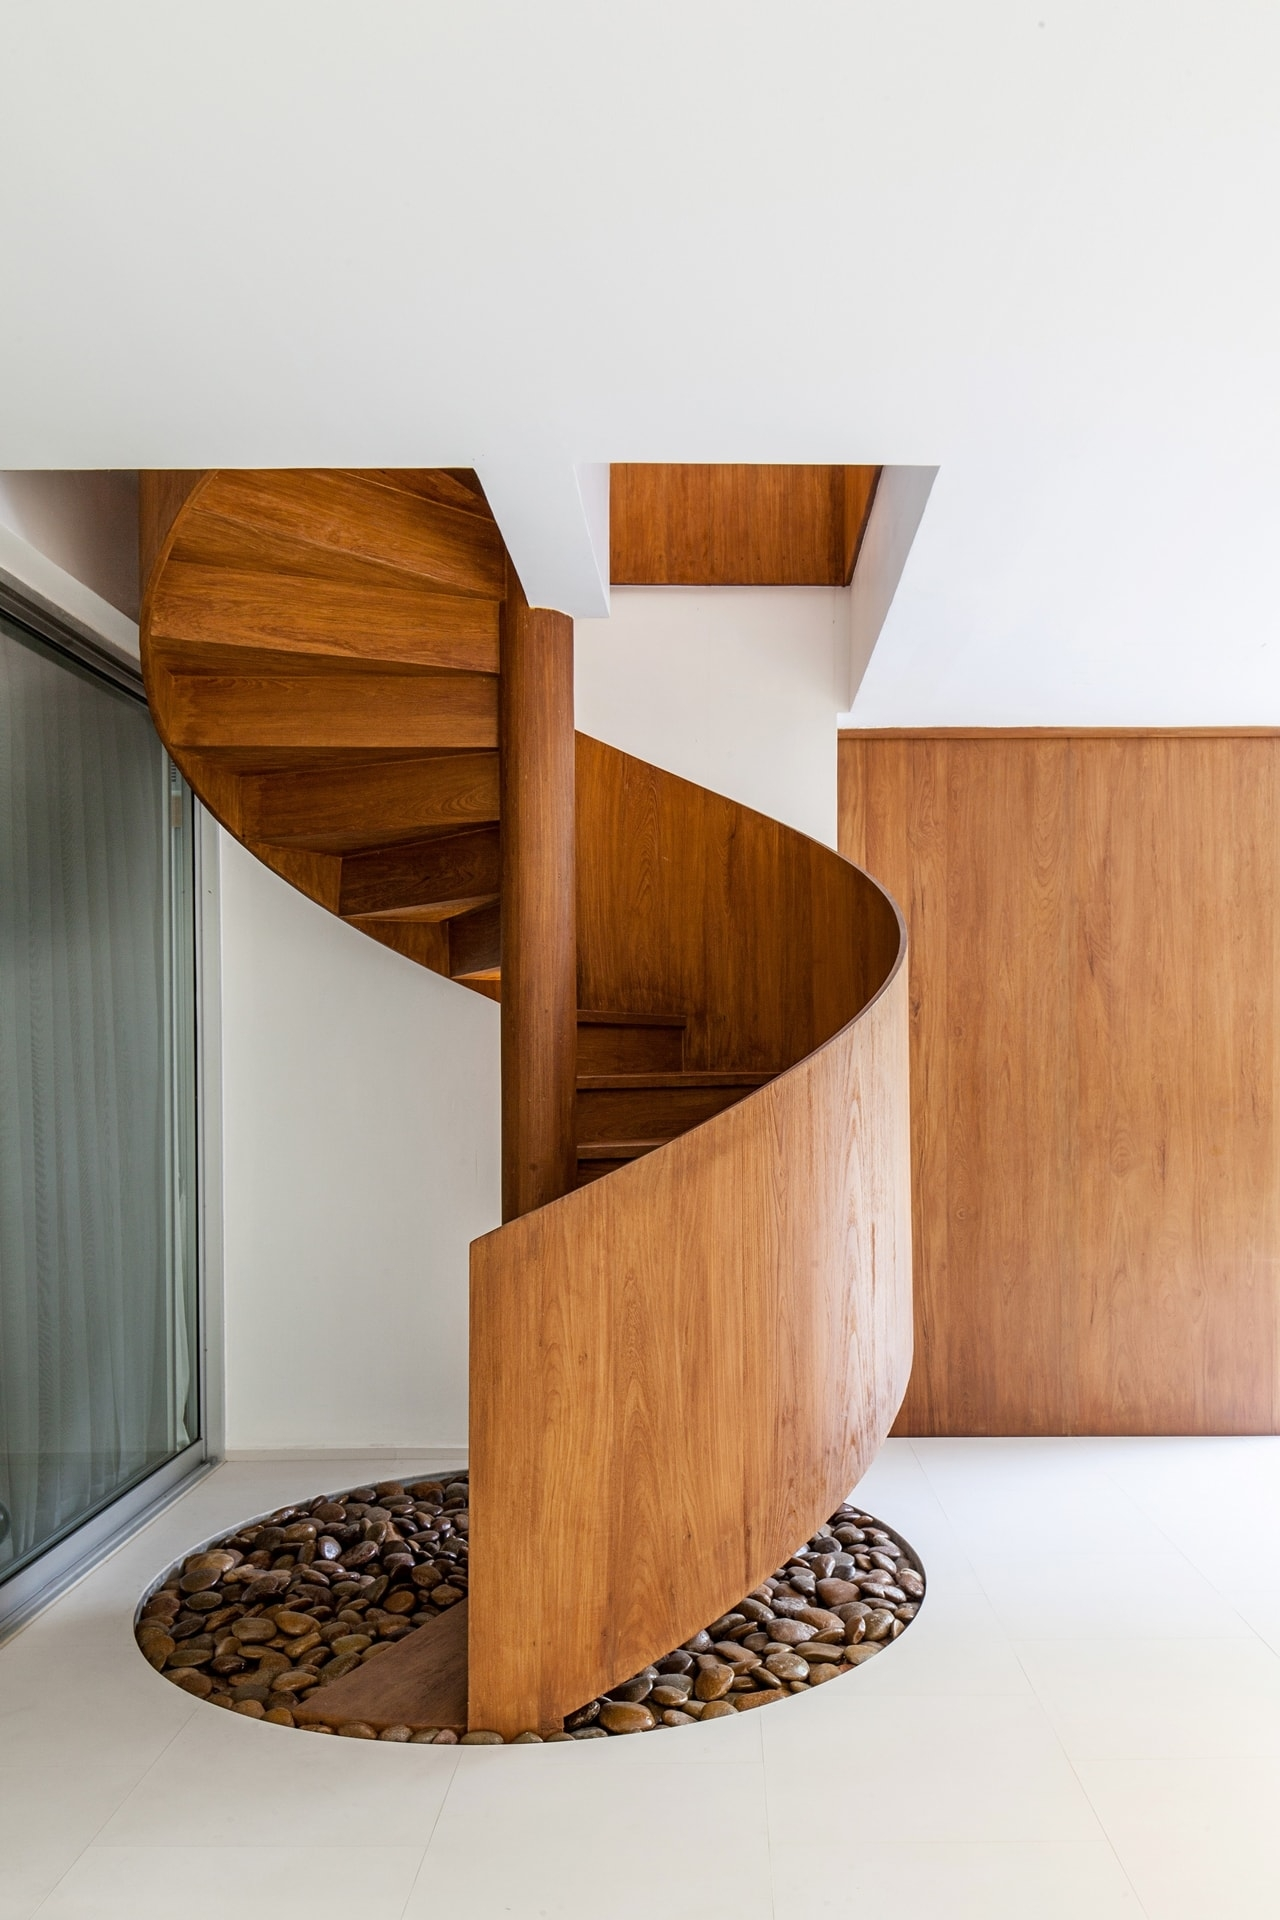 Top 10 Best Spiral Staircase Ideas Architecture Beast   Wooden Spiral Stairs Design   Interior   Curved   Space Saving   Rustic   Contemporary